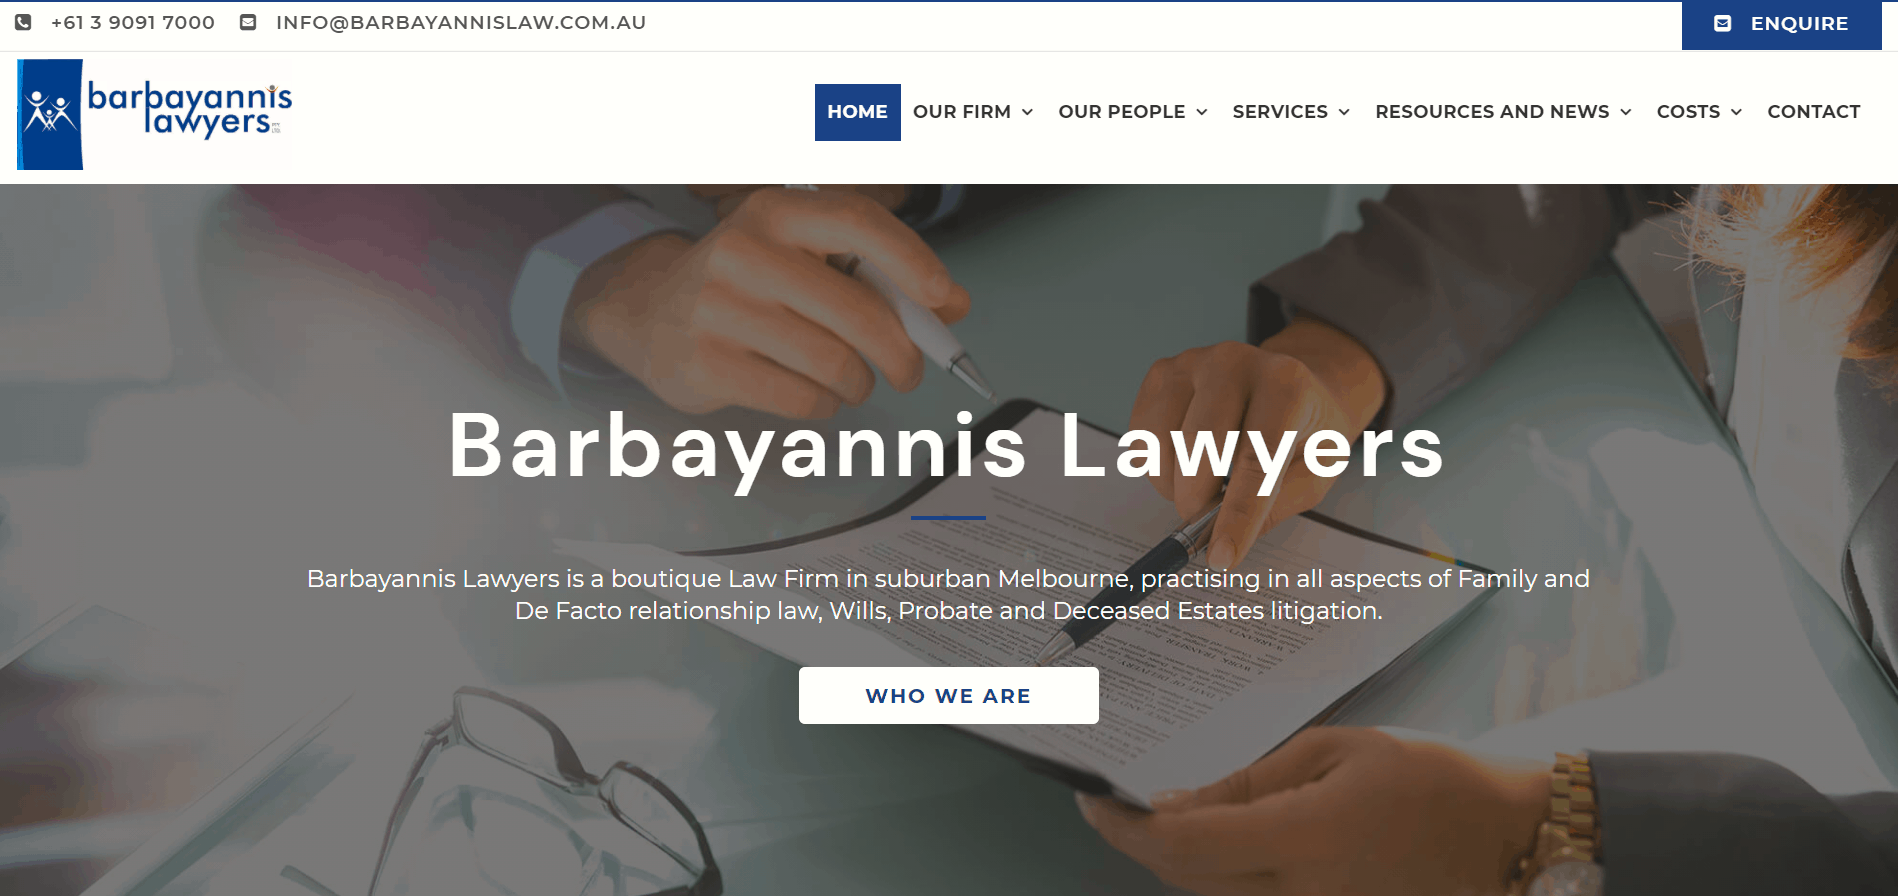 Barbayannis Lawyers